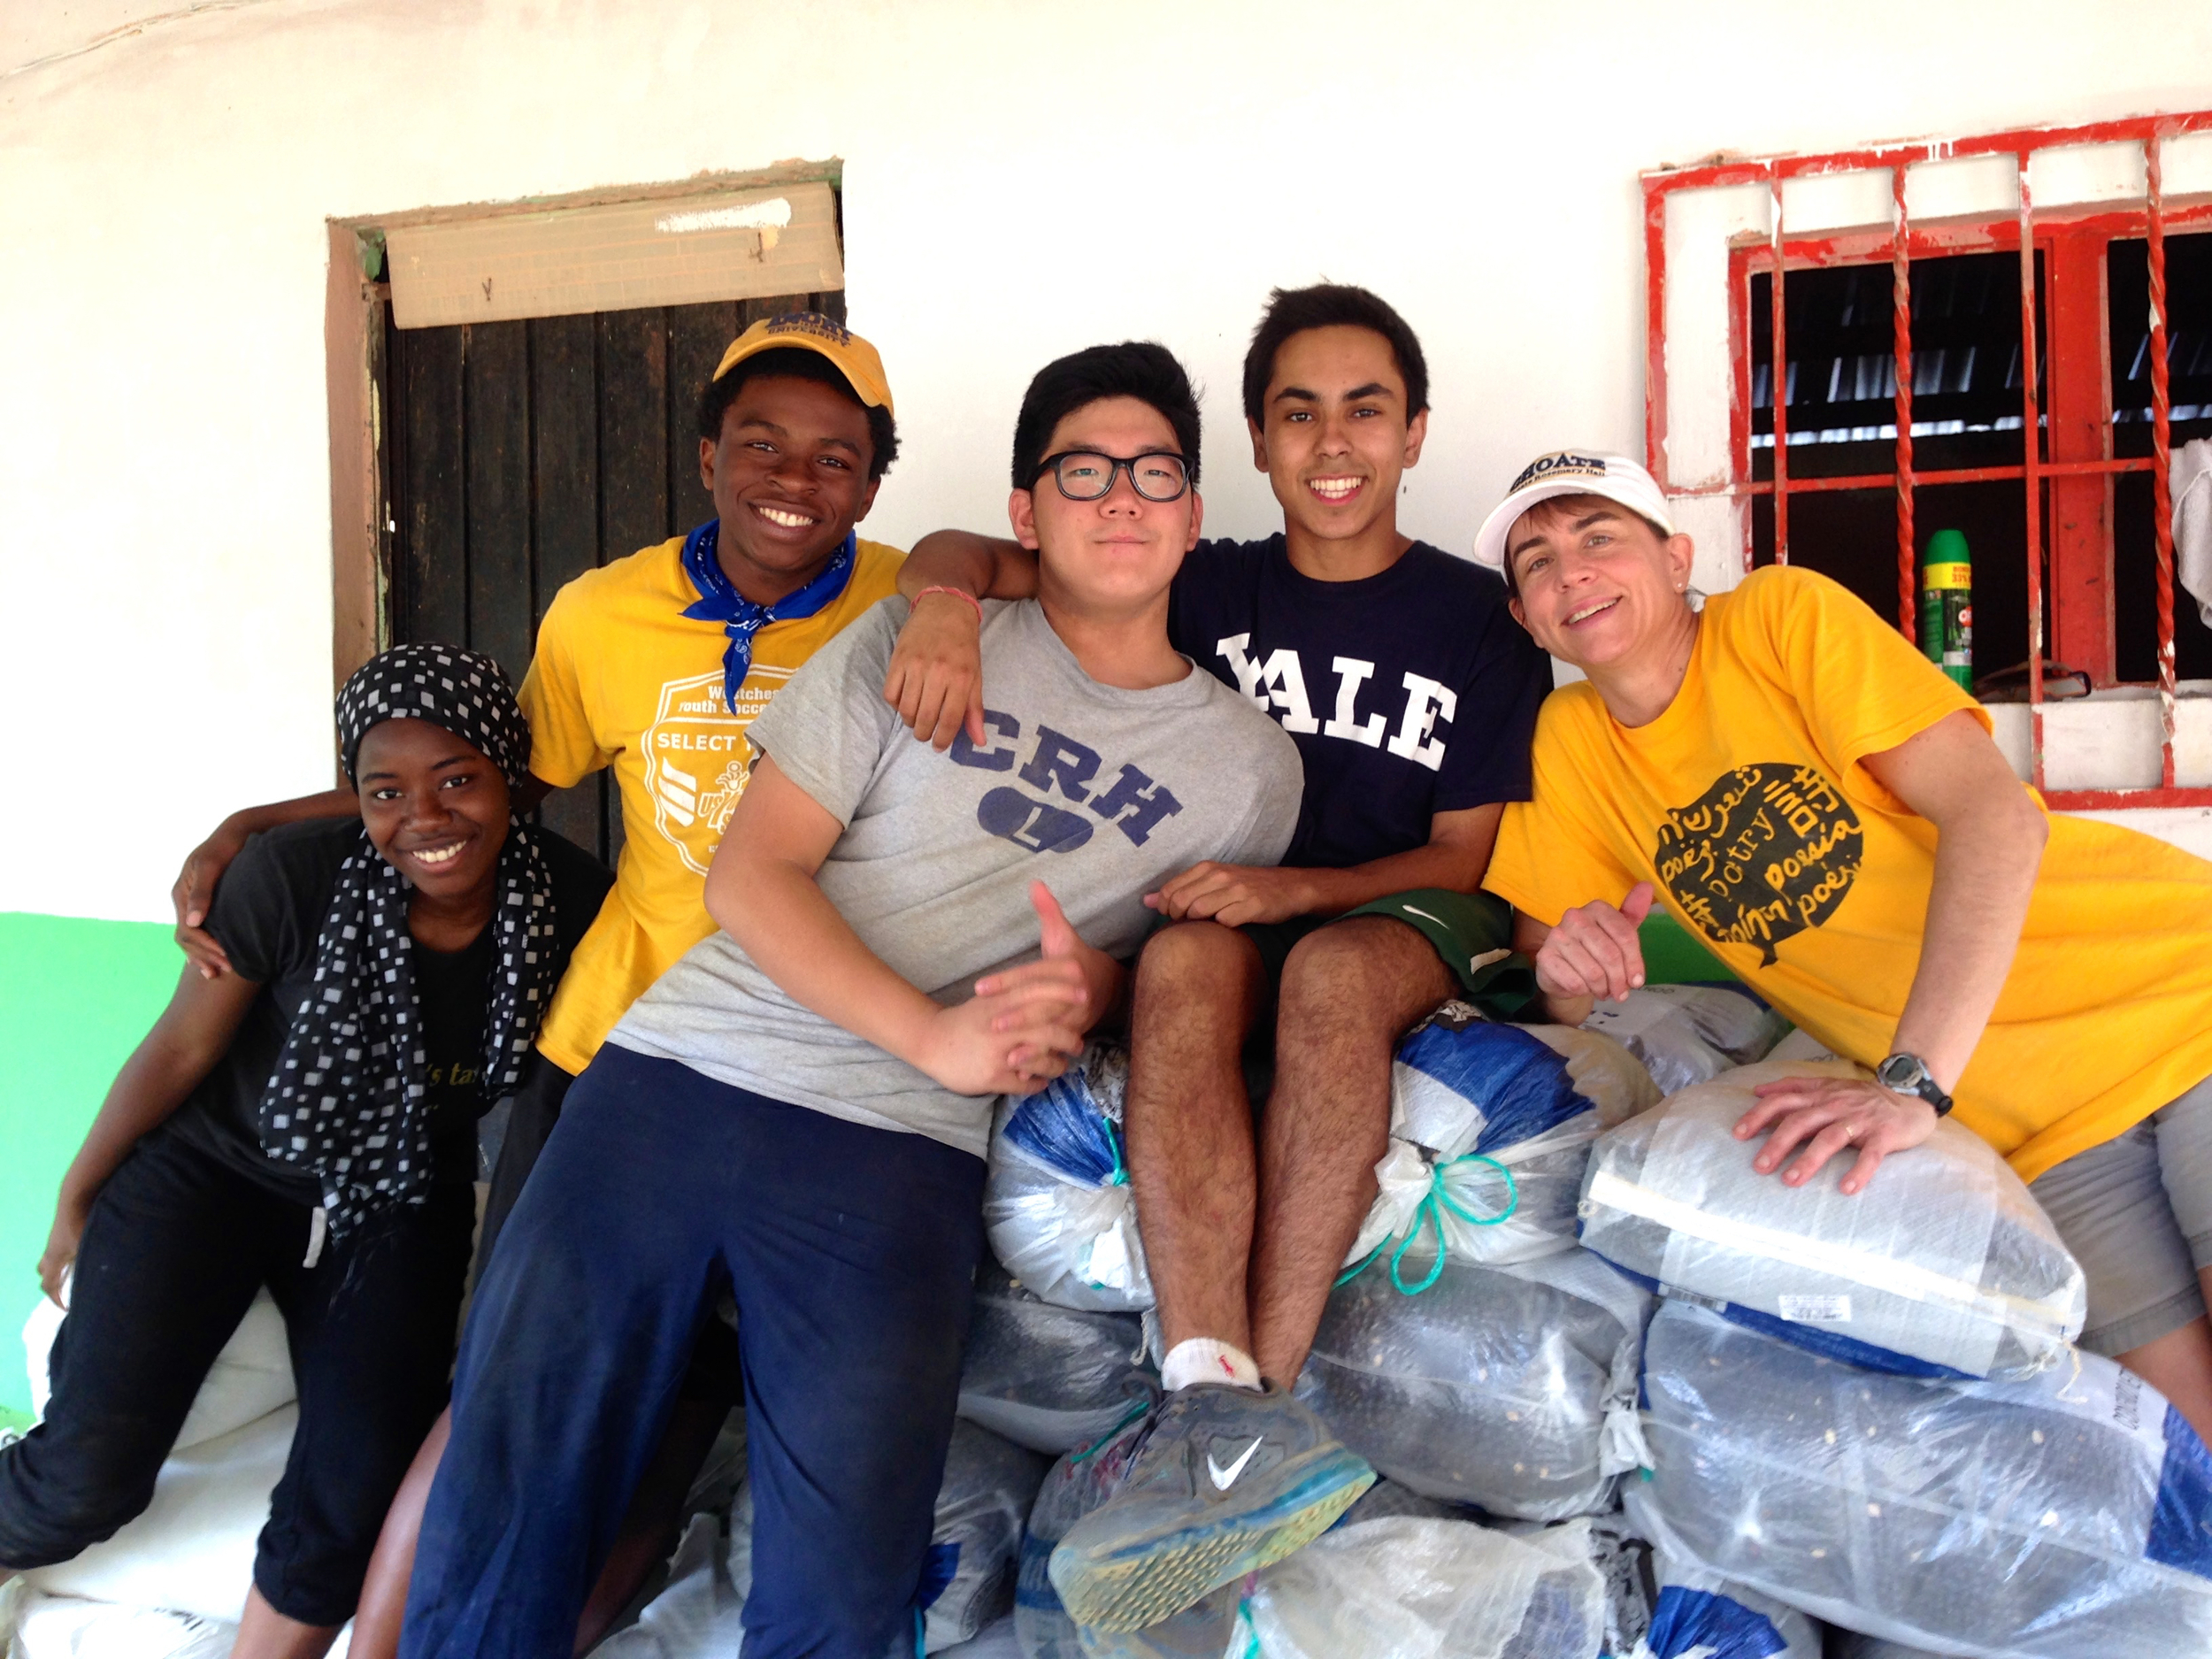 YJ, center, works with his fellow Choate service team members to prepare for our food distribution program, or despensa, in the Oaxacan jungle town of Santa Maria Tepexipana.